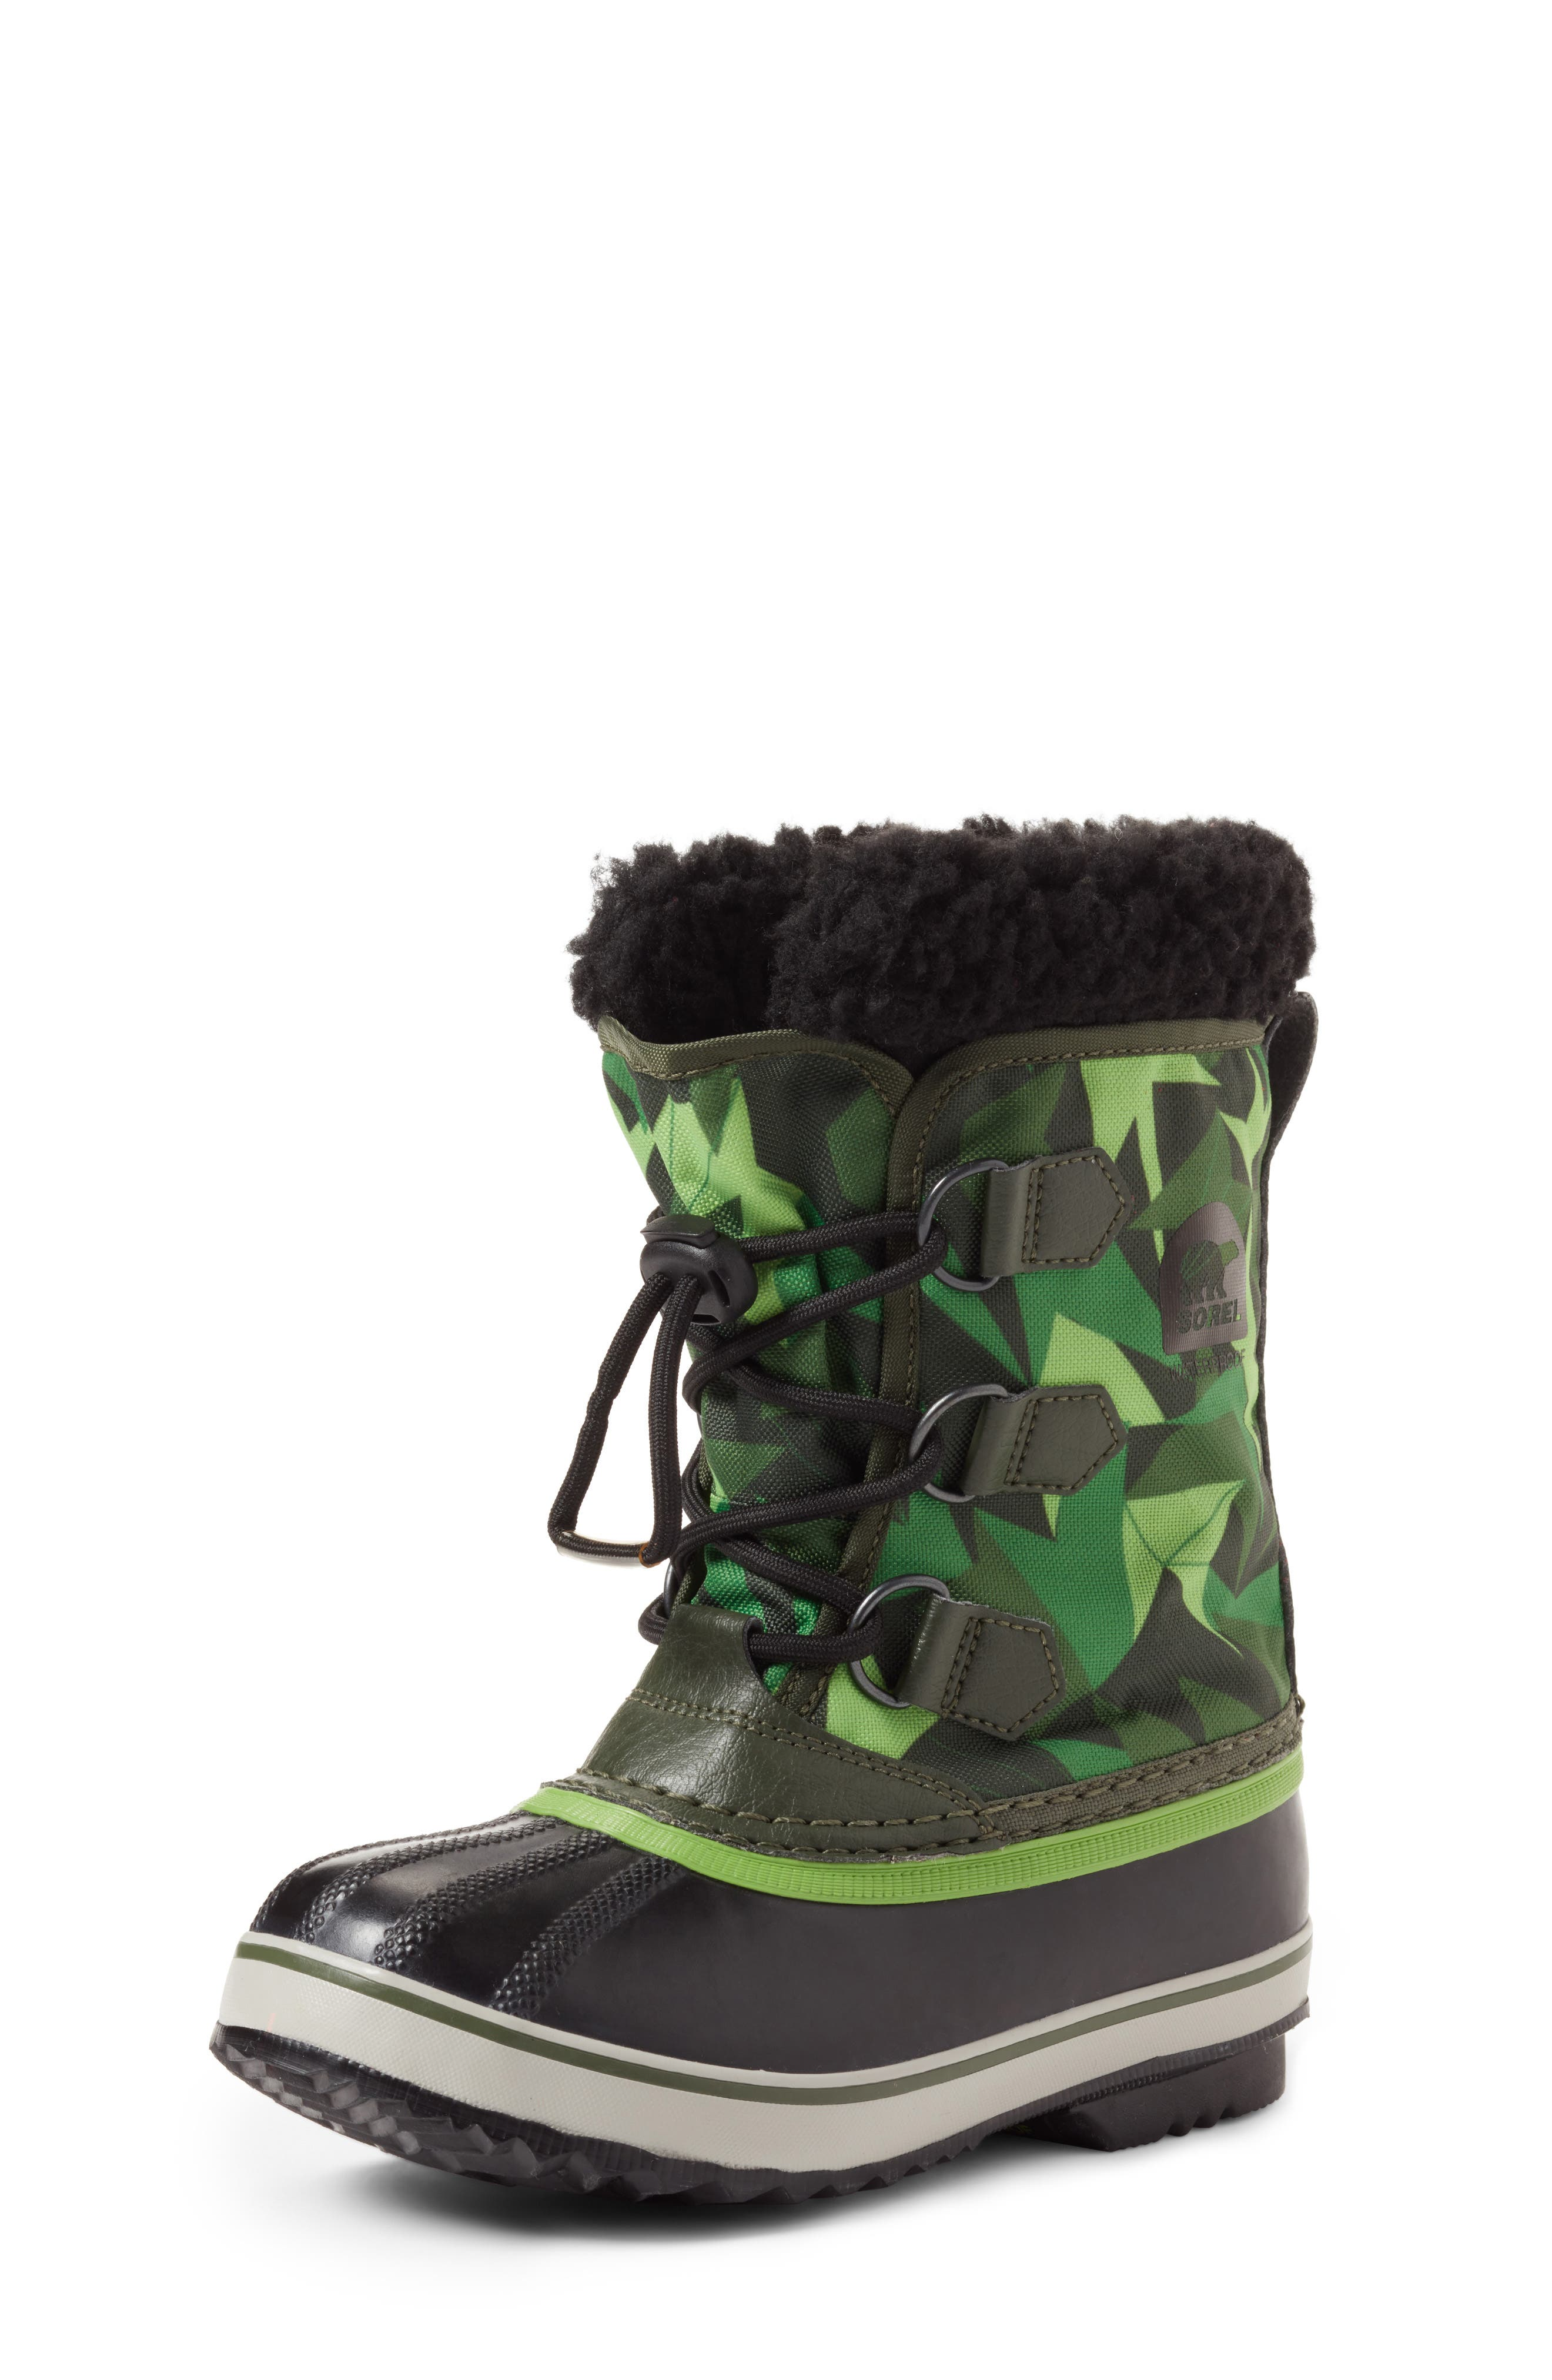 Yoot Pac Waterproof Insulated Snow Boot,                             Main thumbnail 1, color,                             Surplus Green/ Green Mamba